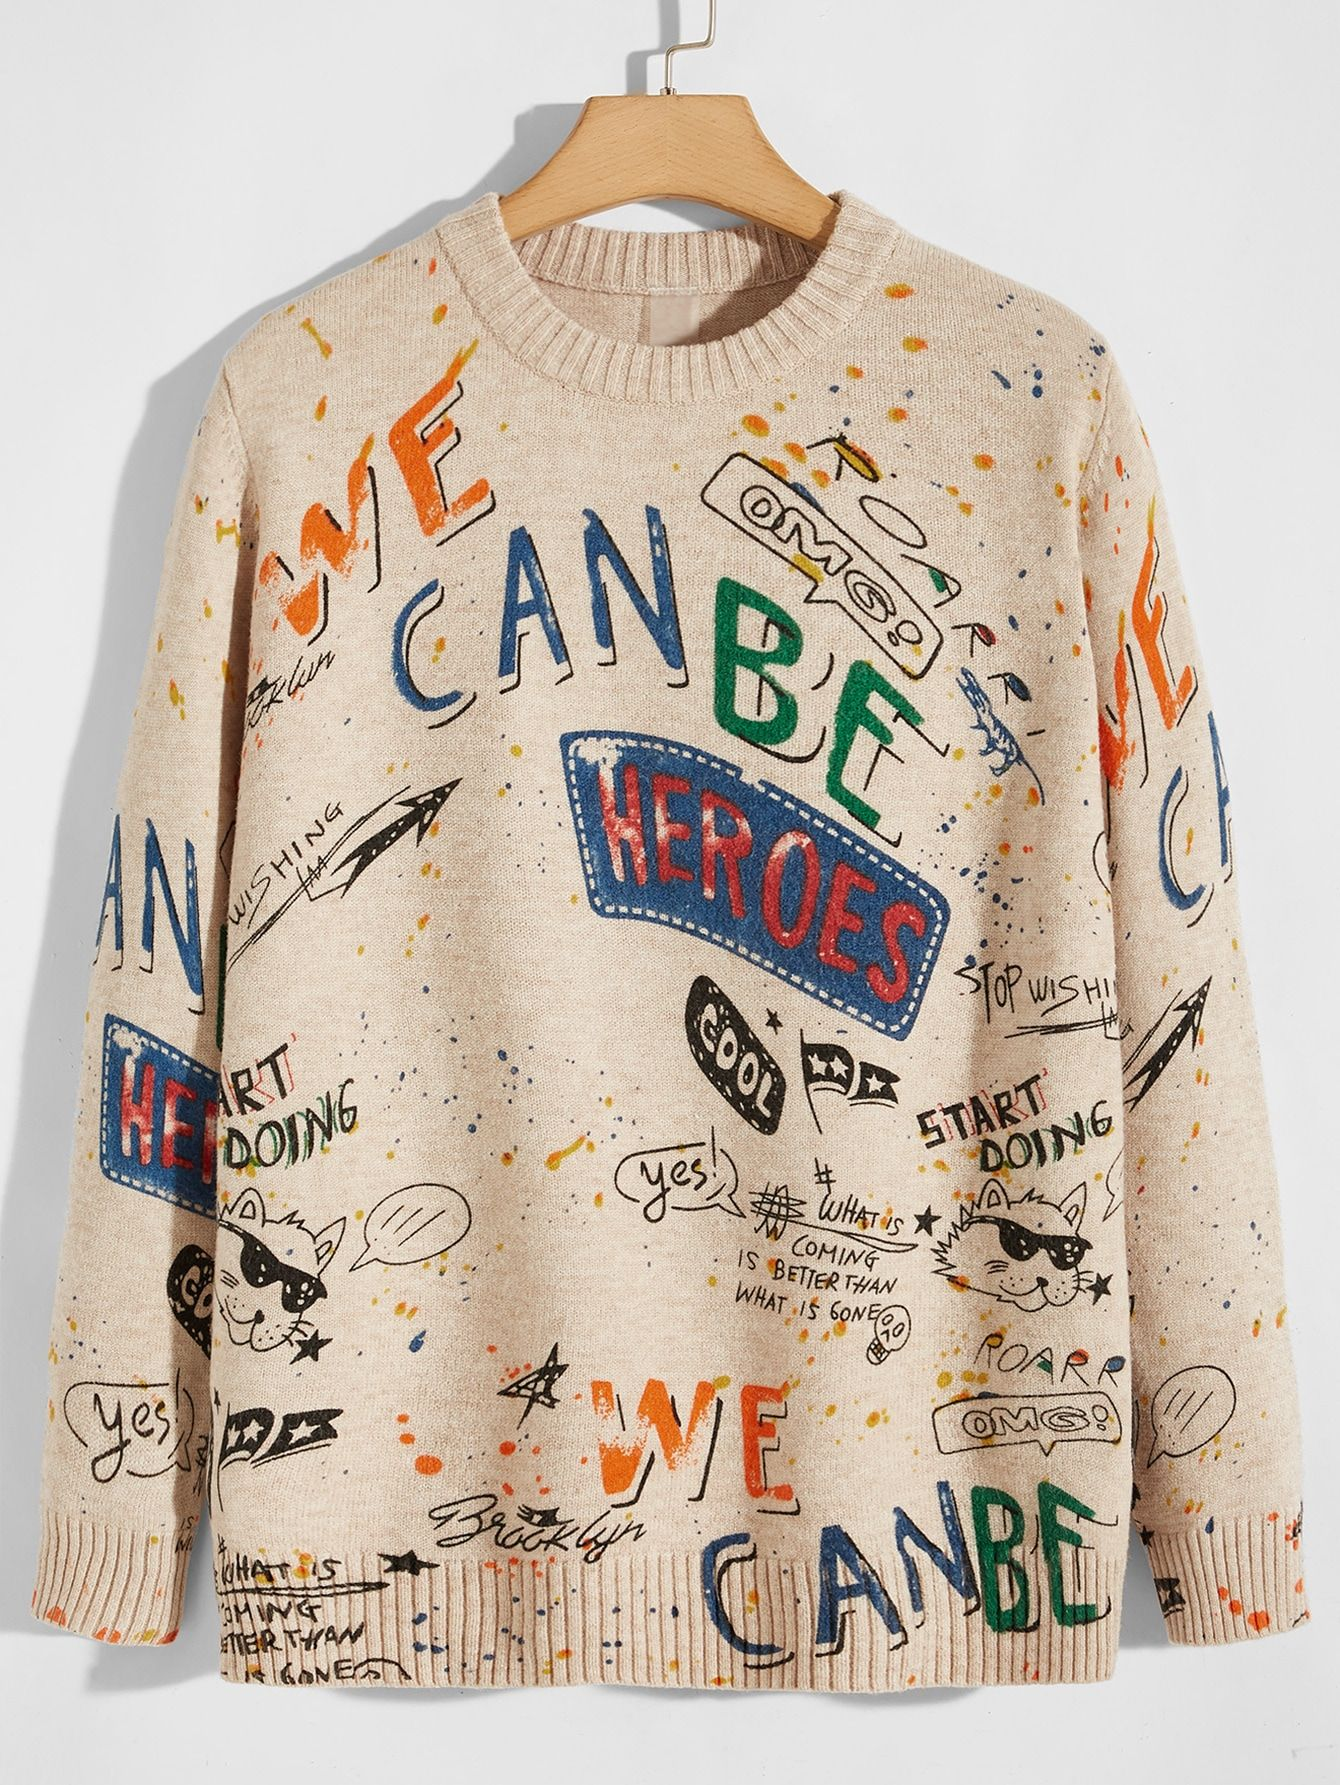 Men Letter Graphic Sweater Shein Usa Sweaters Graphic Sweaters Fashion Branding [ 1785 x 1340 Pixel ]